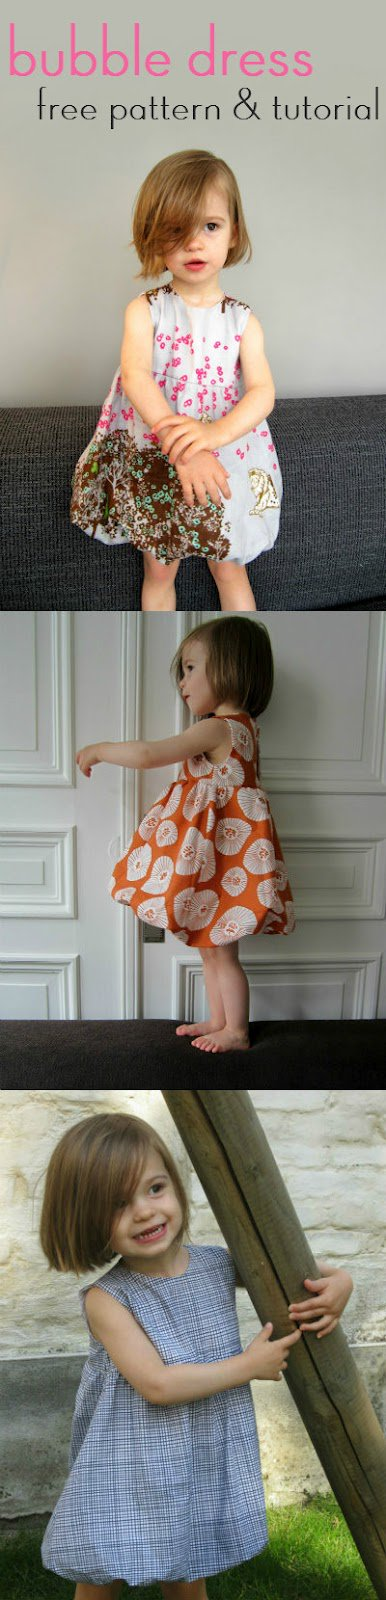 #And #Bubble #Dress #Patterns #Tutorial #diy #crafts Please RT: https://t.co/URj65goH4i https://t.co/ACCL3vyyql